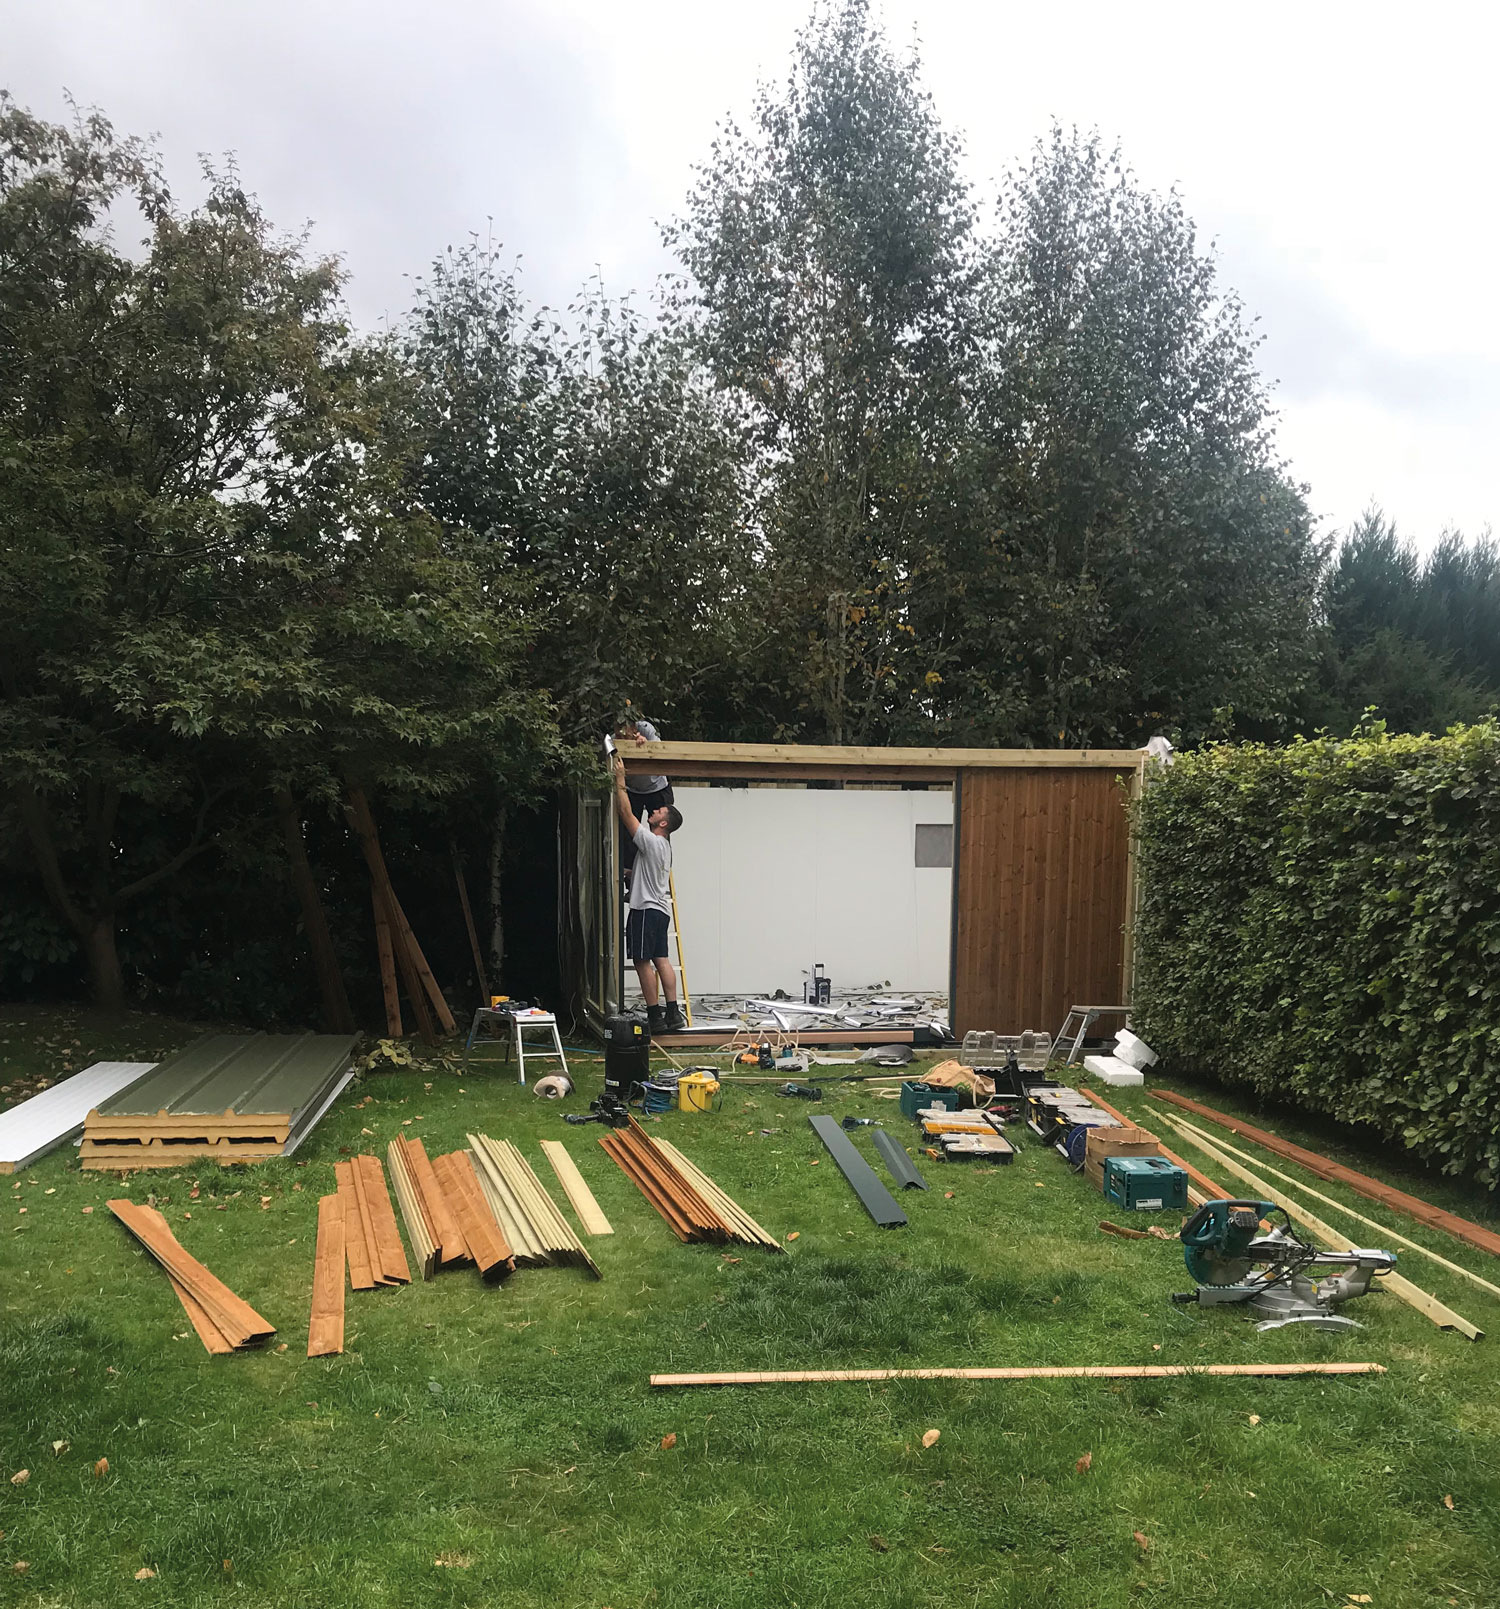 My garden studio as a work in progress last September. The company I used was Green Retreats and they were fantastic - I can highly recommend them.